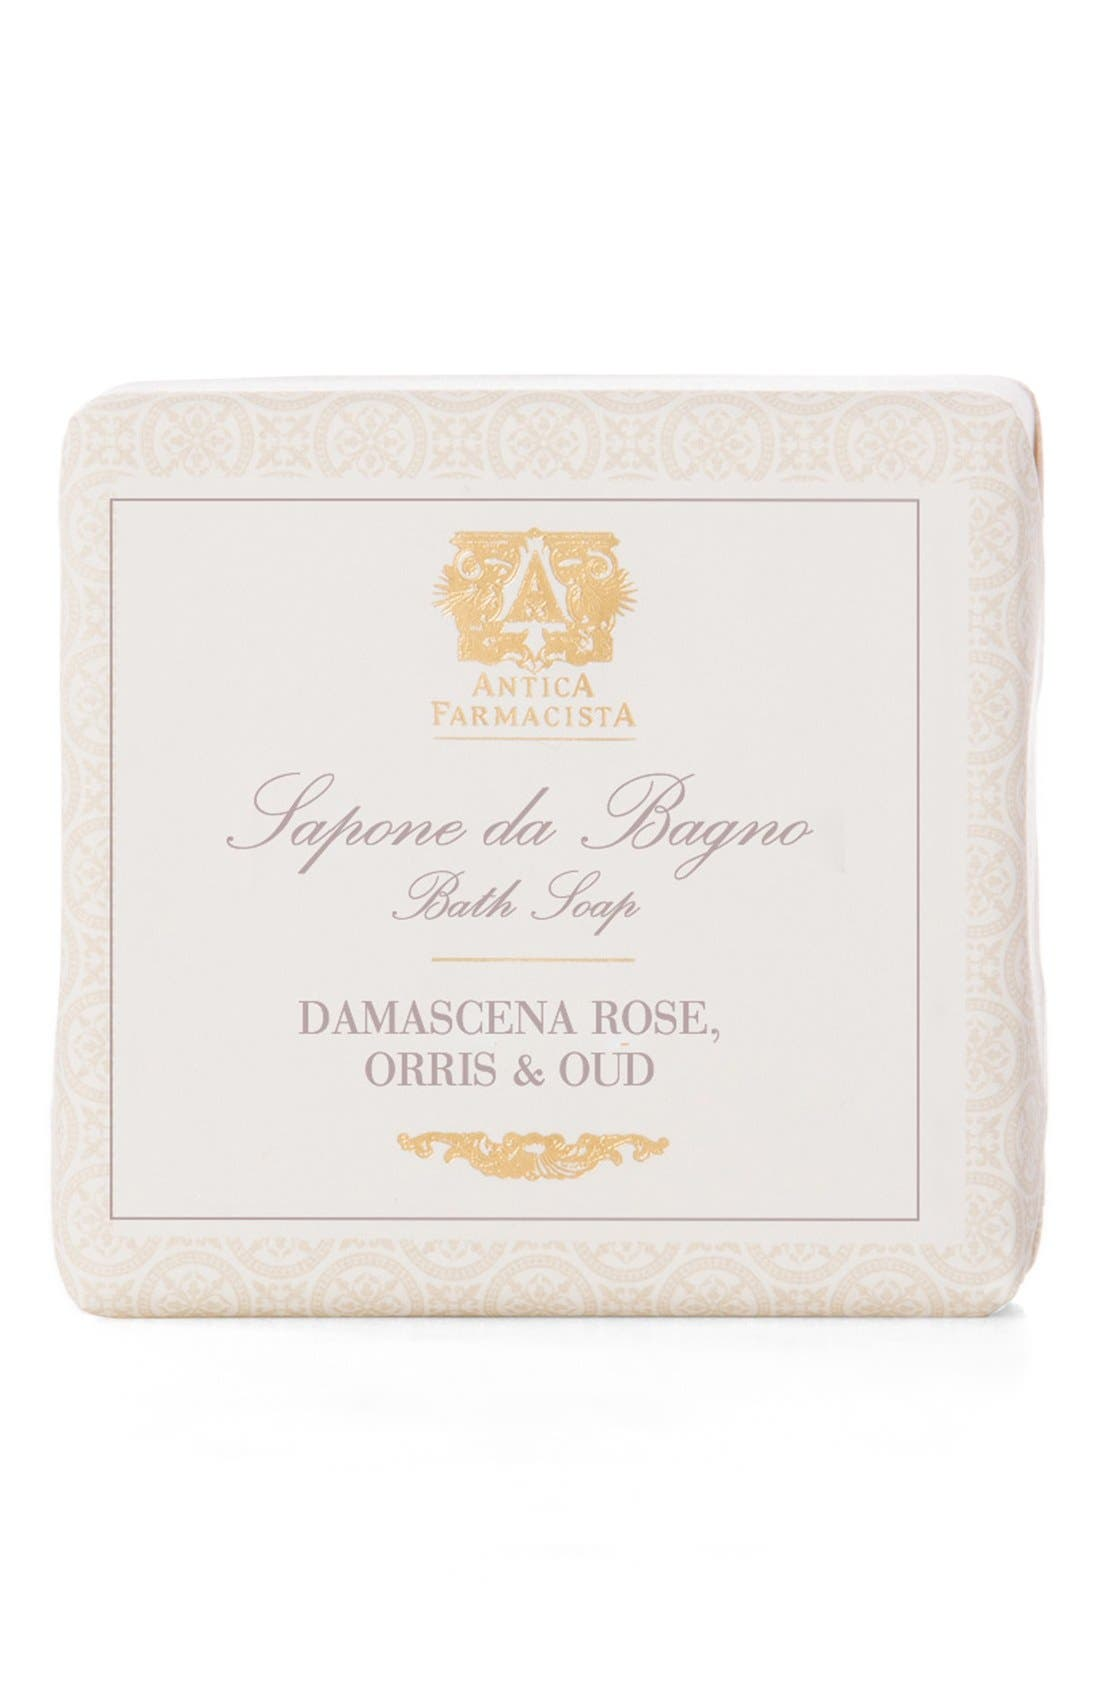 'Damascena Rose, Orris & Oud' Bar Soap,                             Main thumbnail 1, color,